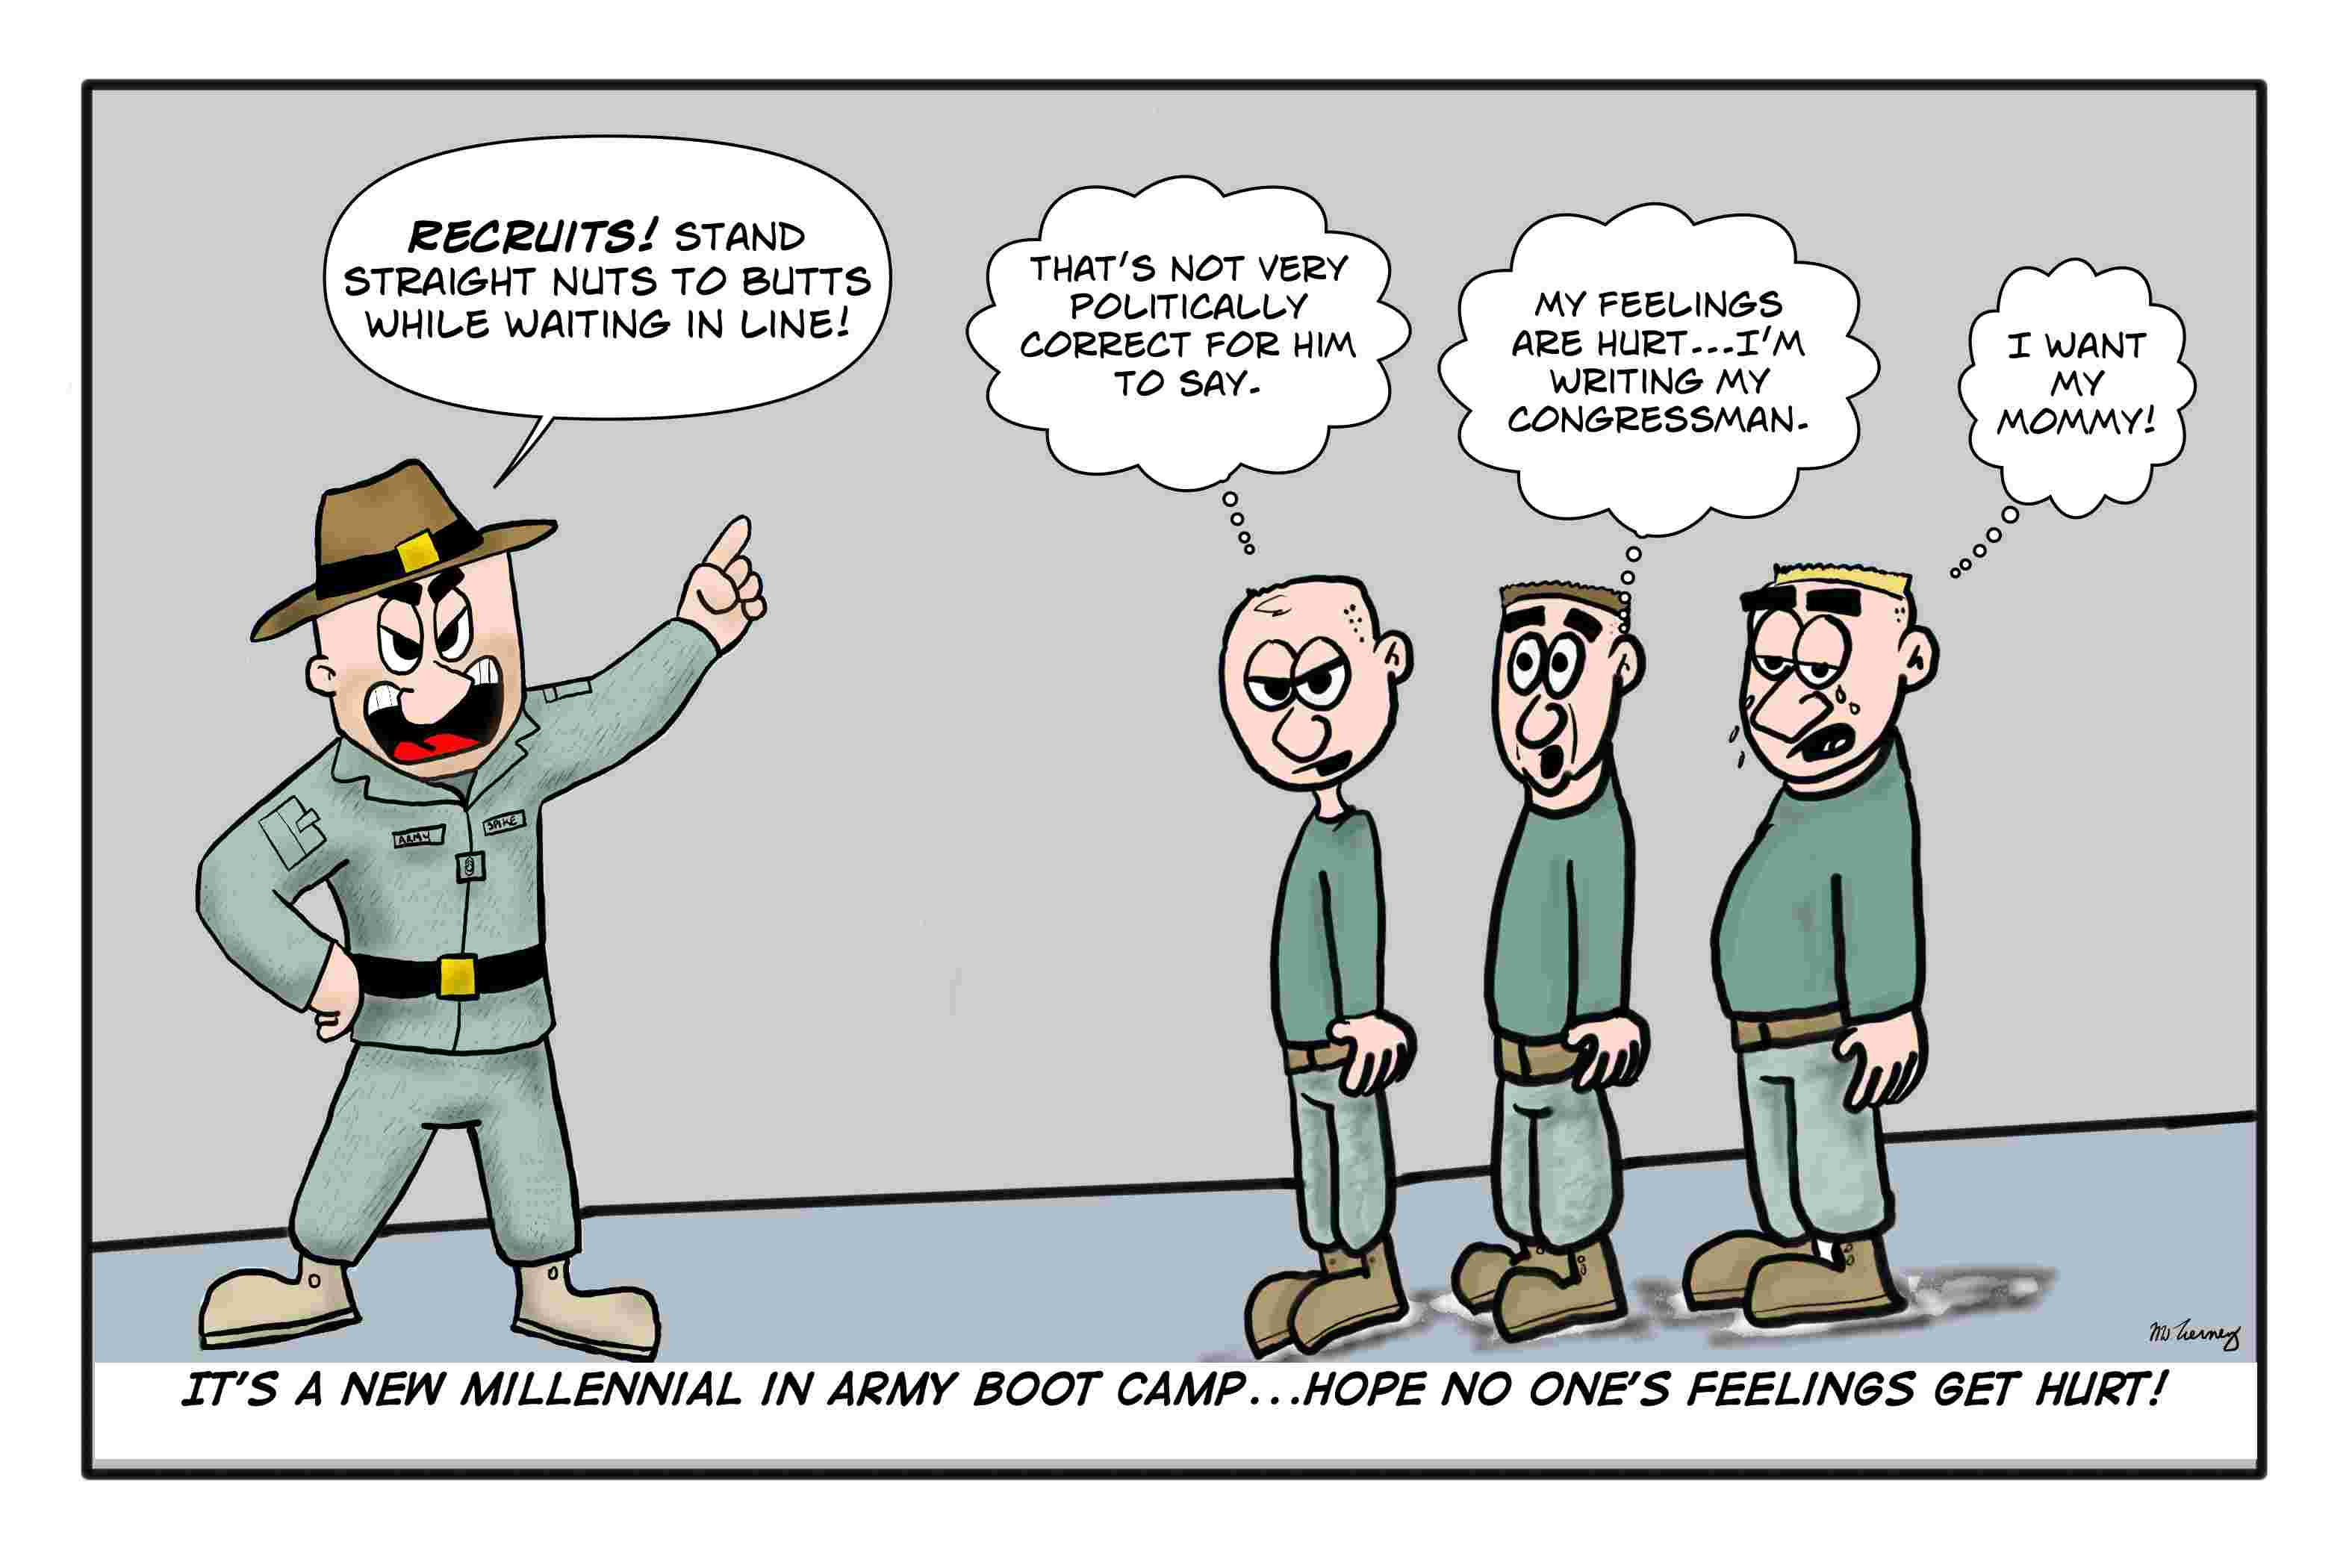 boot camp army